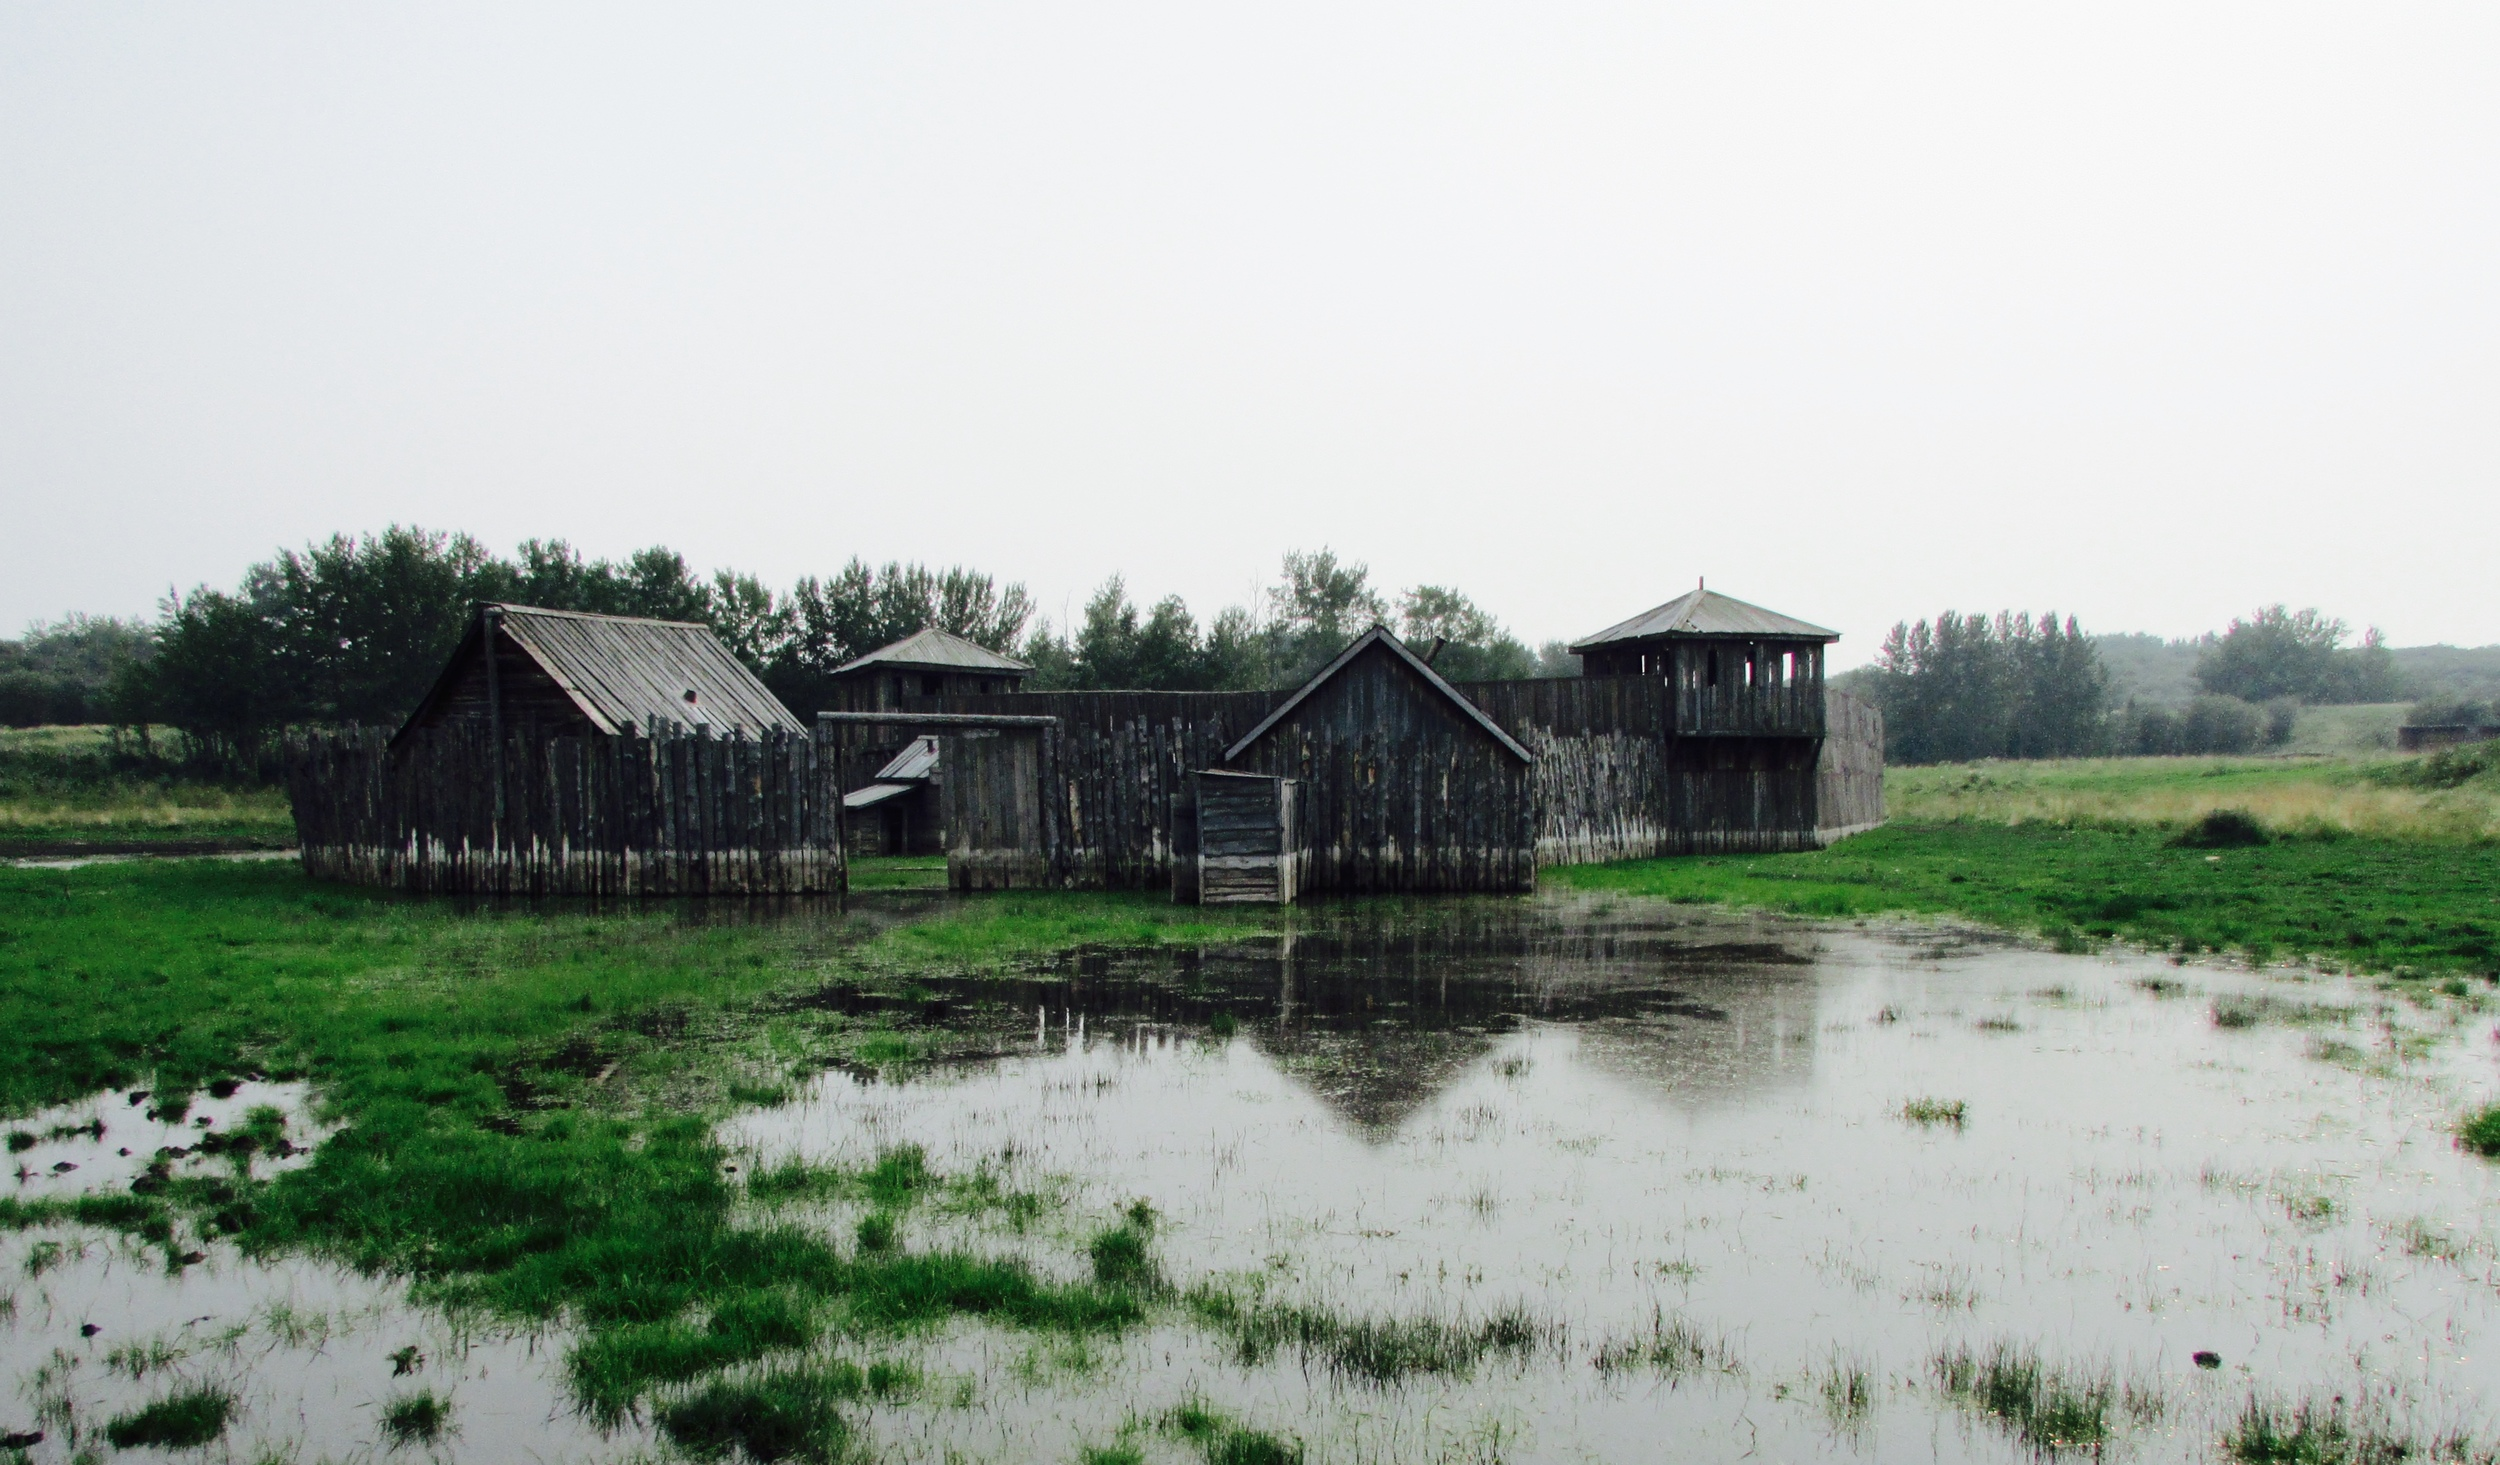 A structure on a private ranch in Alberta, Canada